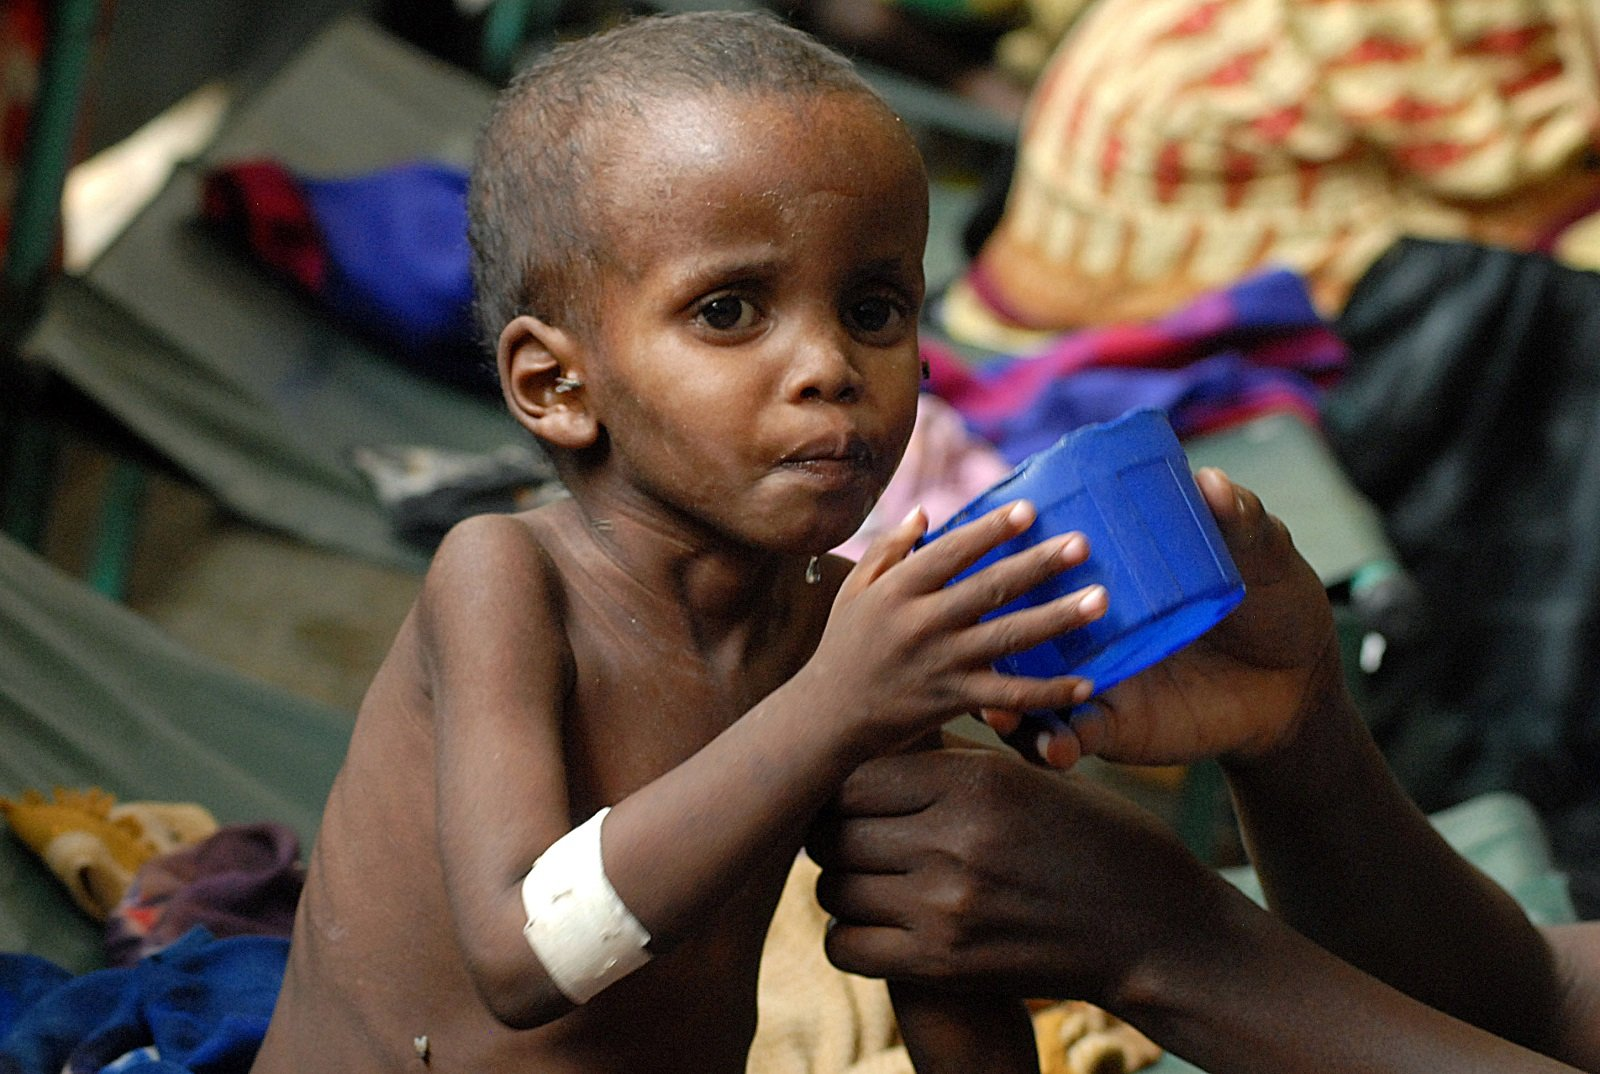 the epidemic of under nutrition haunts india�s cities and